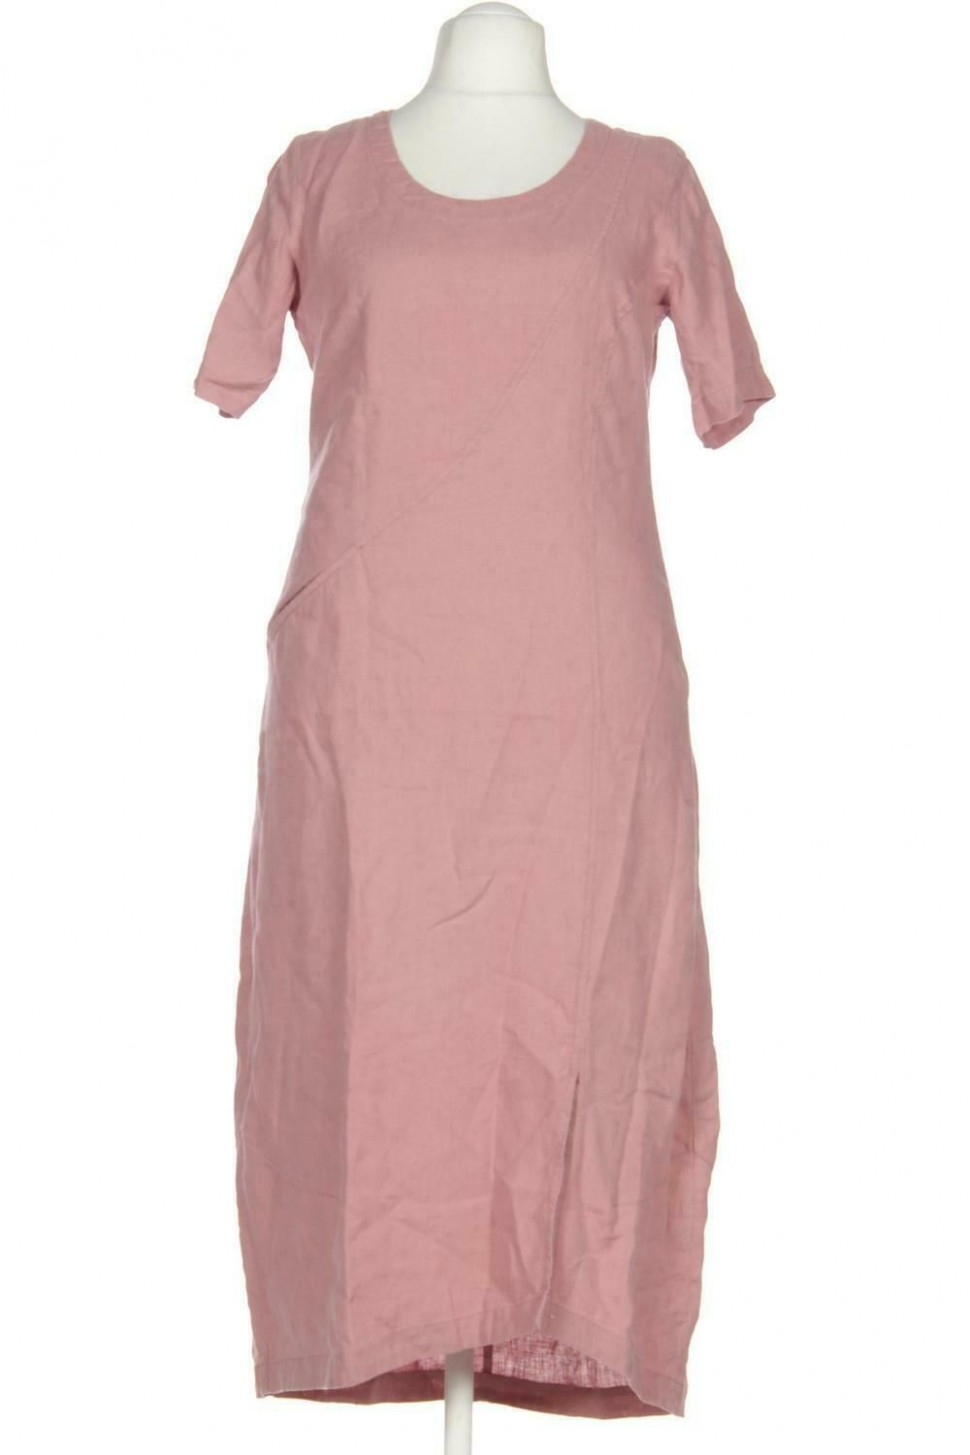 Vetono Kleid Damen Dress Damenkleid Gr. XL Leinen pink #fde9e9